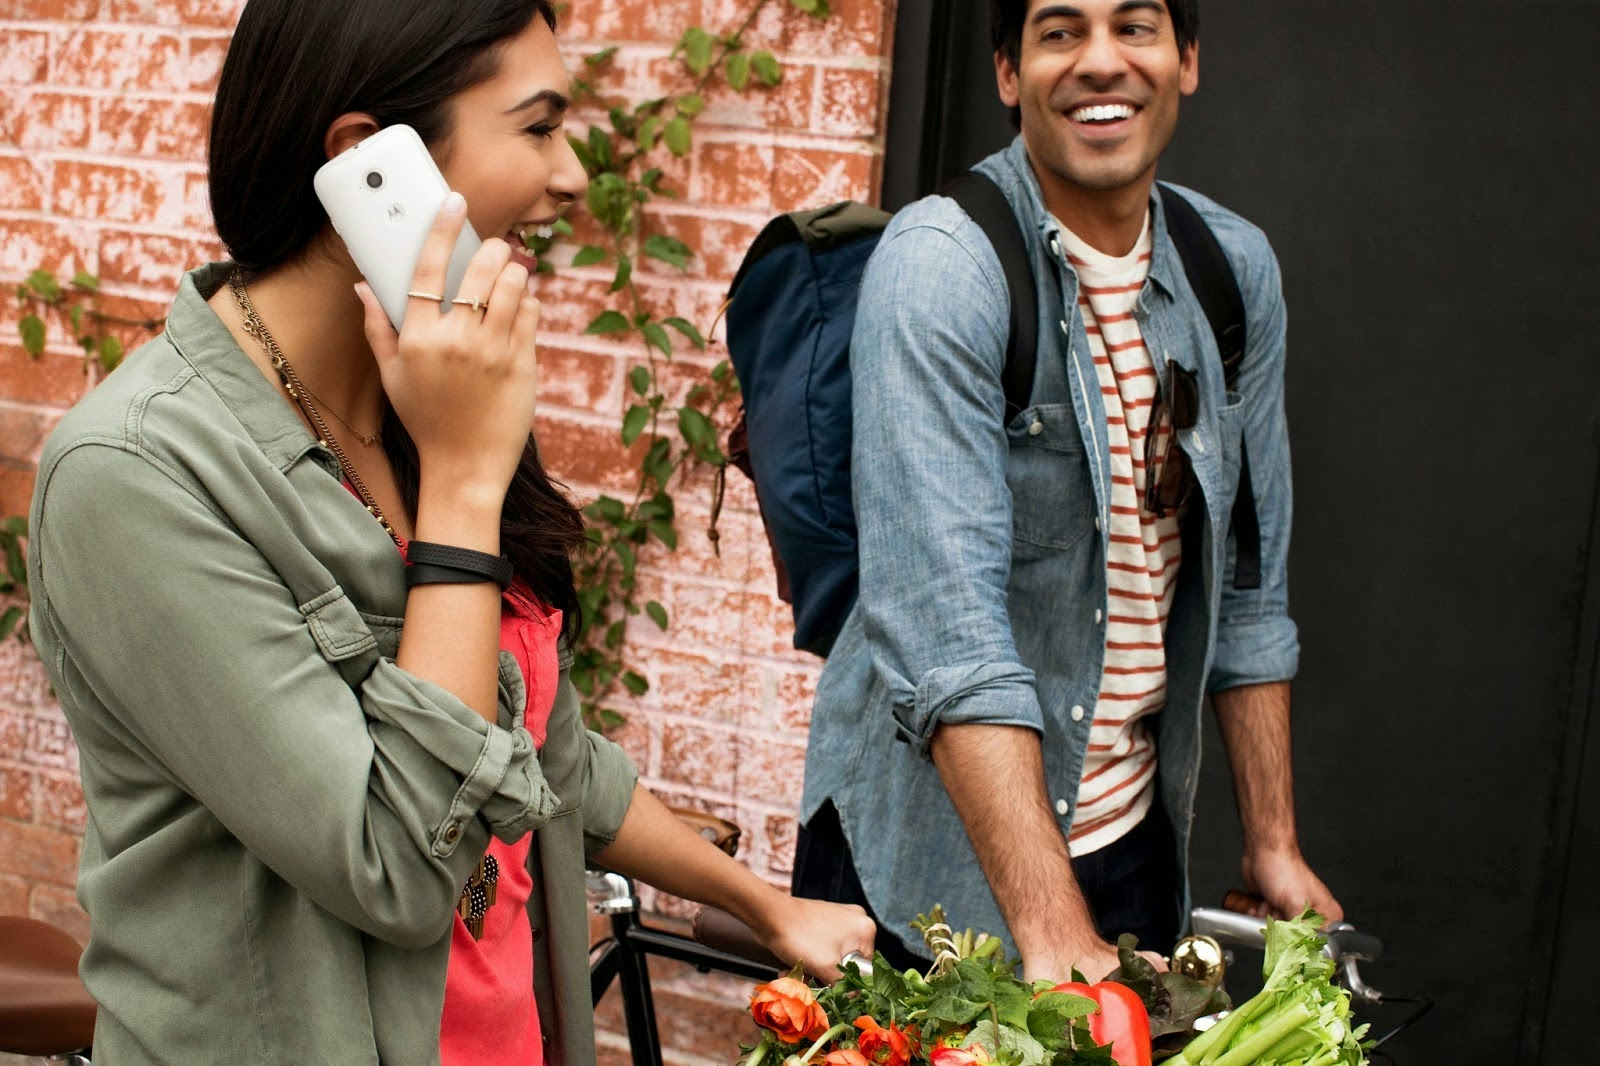 05_City%2B1_190_v2 Motorola surprise with moto e 2nd generation with android lollipop and 4G LTE Apps